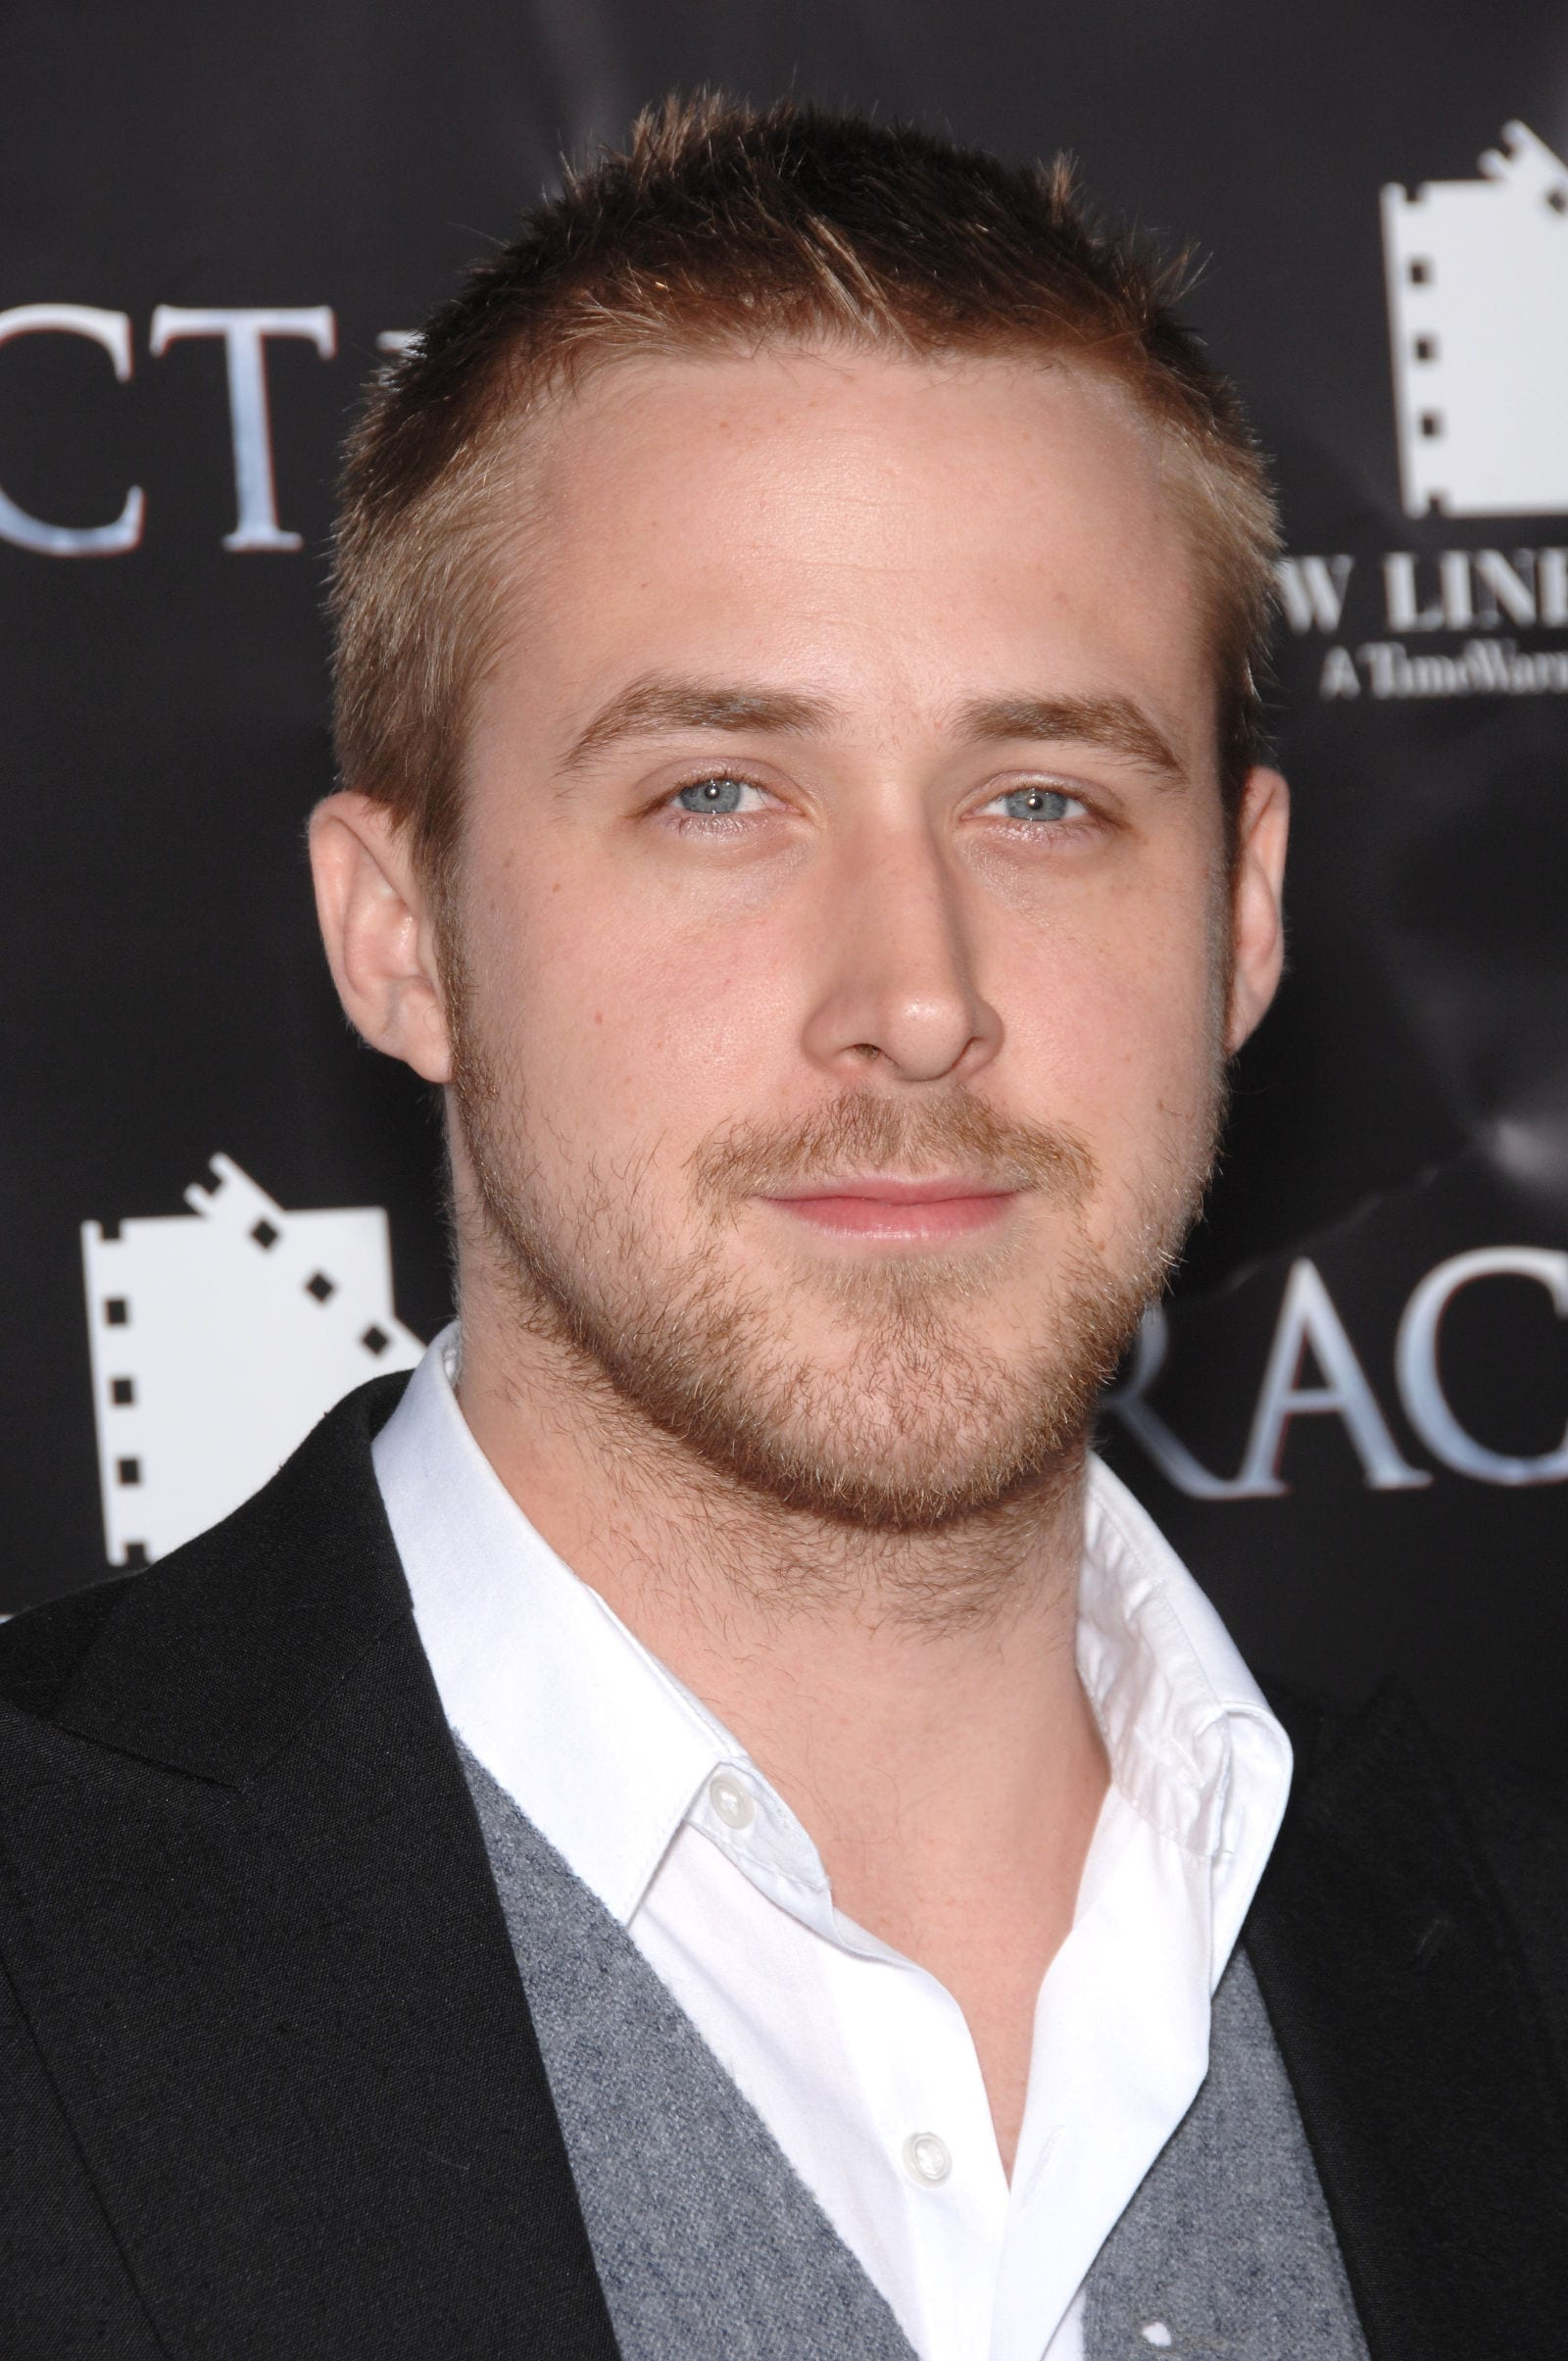 Ryan Gosling Messy Crewcut April 2007